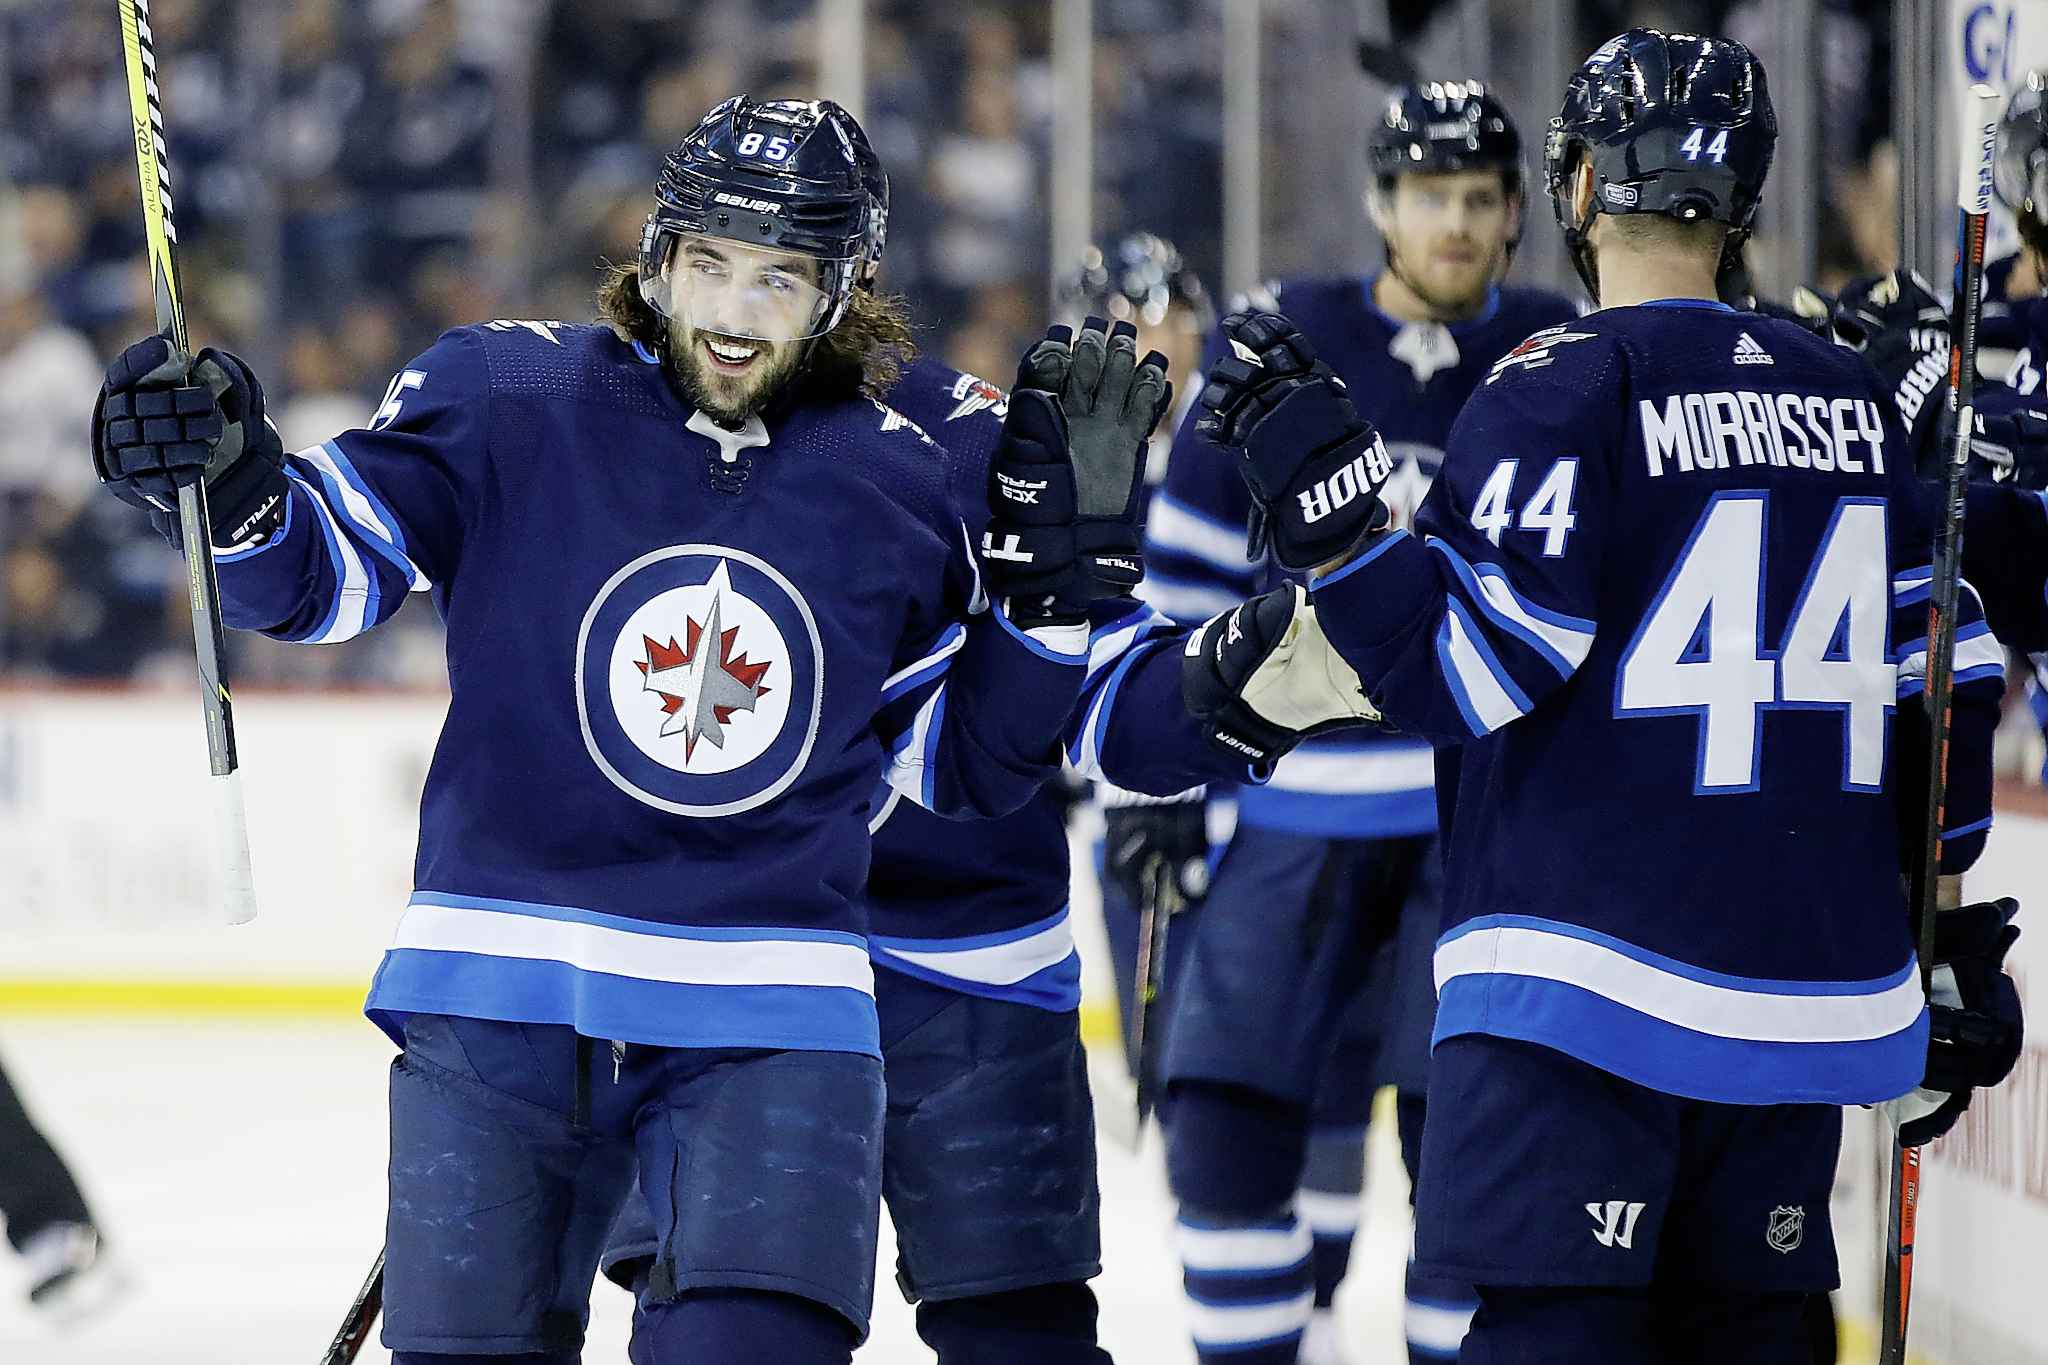 Winnipeg Jets  Mathieu Perreault celebrates his goal against the Colorado  Avalanche during the first period 0b218fef7